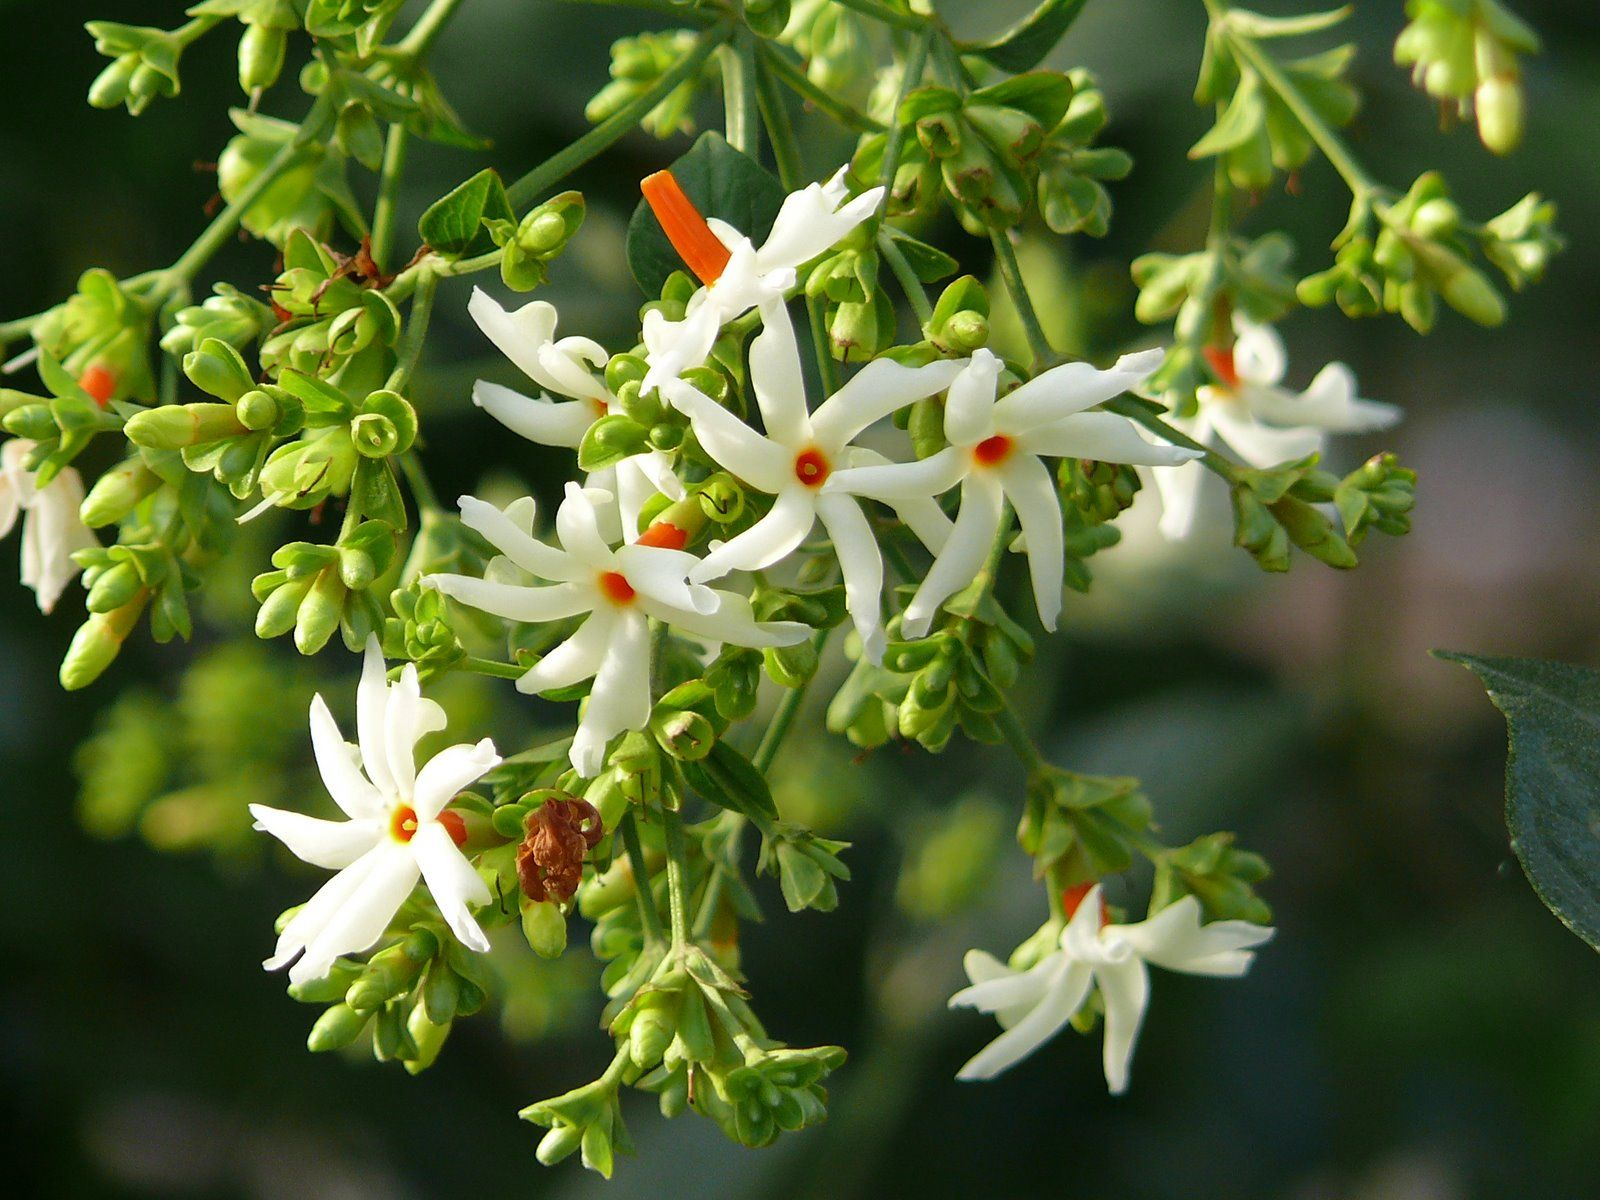 Nyctanthes Arbortristis Coral Jasmine Night Jasmine The Tree Is Sometimes Called The Tree Of Sorrow Becaus Fragrant Flowers Jasmine Plant Jasmine Flower